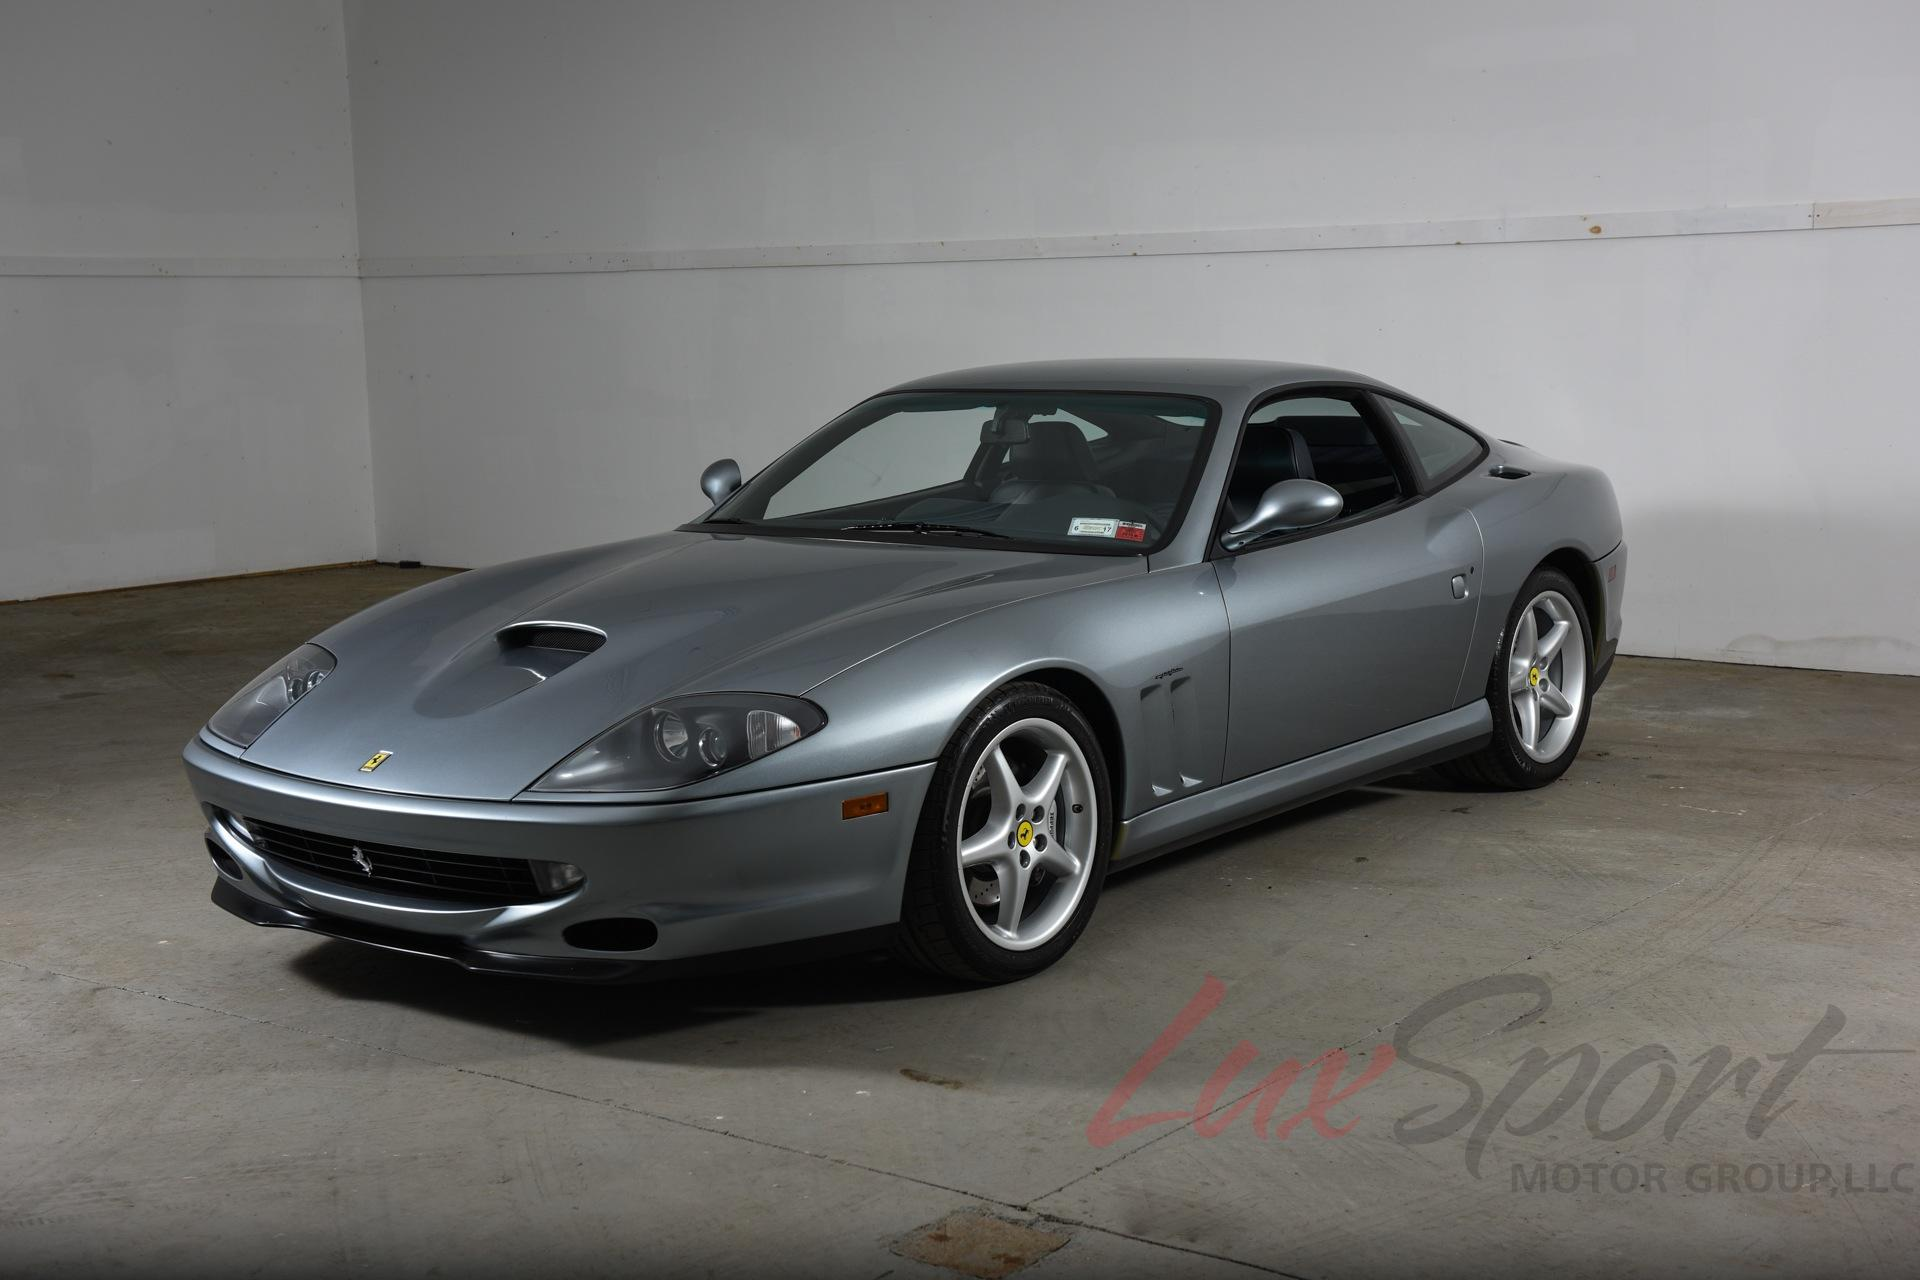 2001 ferrari 550 maranello coupe maranello. Black Bedroom Furniture Sets. Home Design Ideas